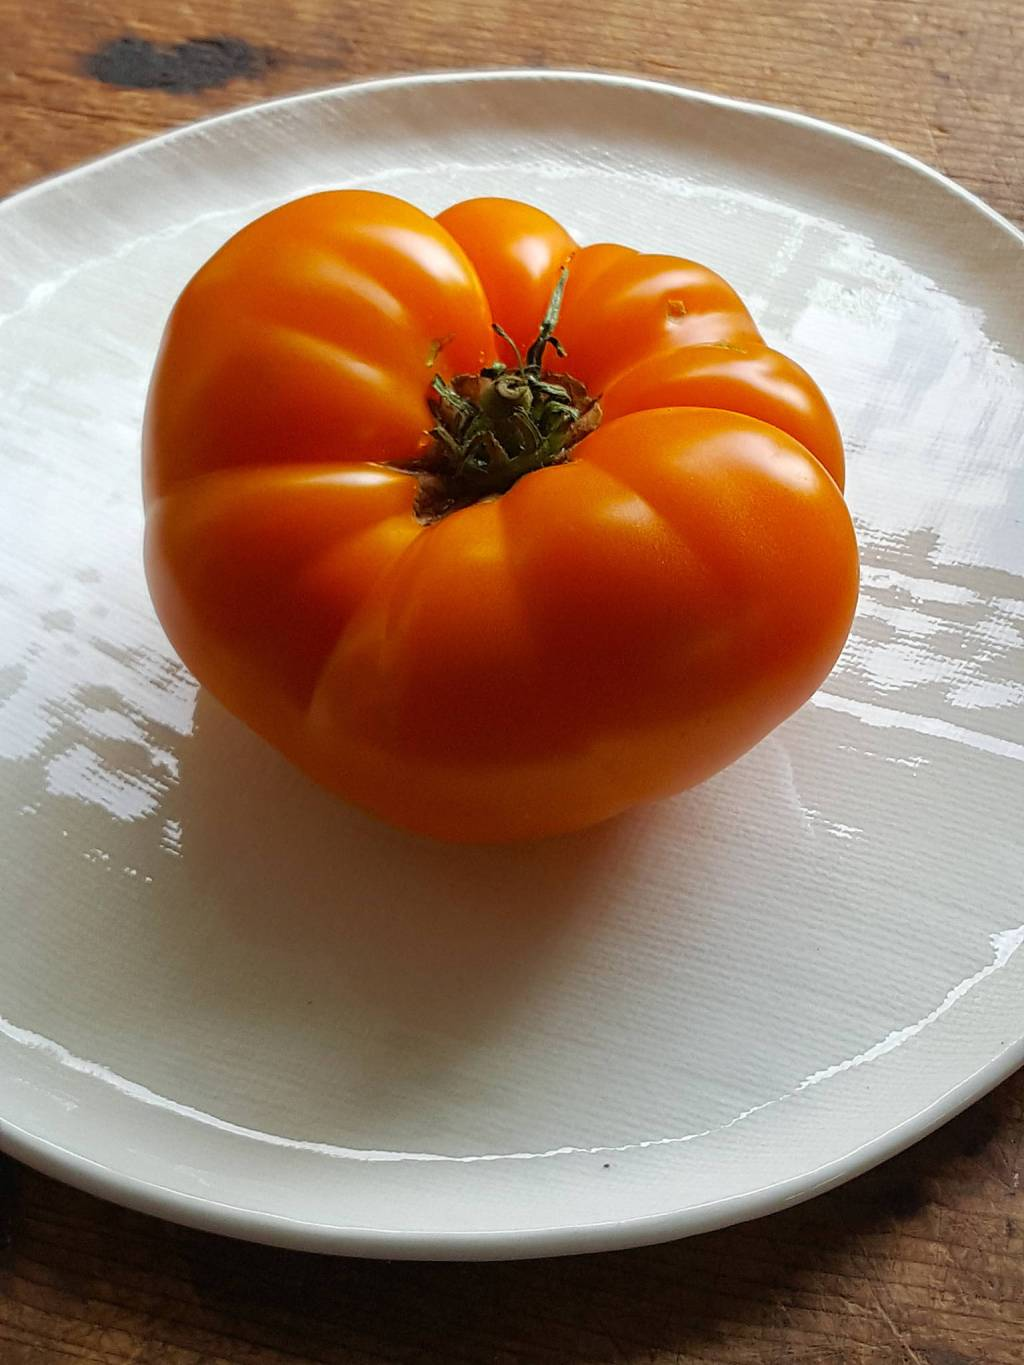 Tomato For One!